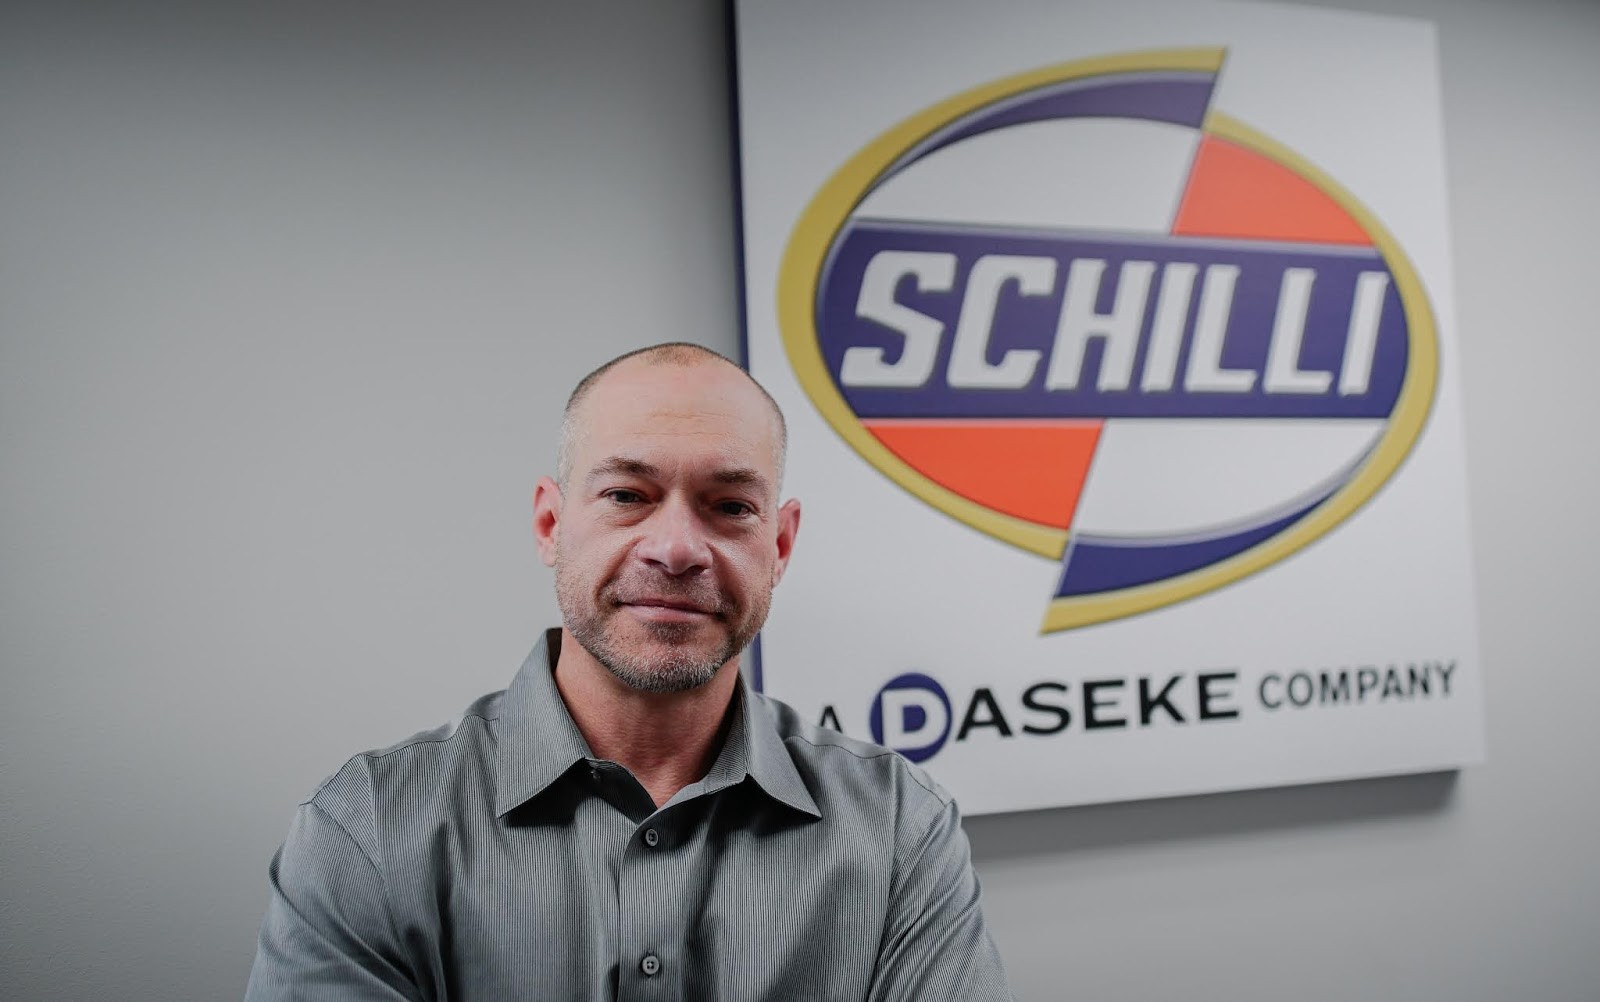 Schilli Transportation Services featured in international business